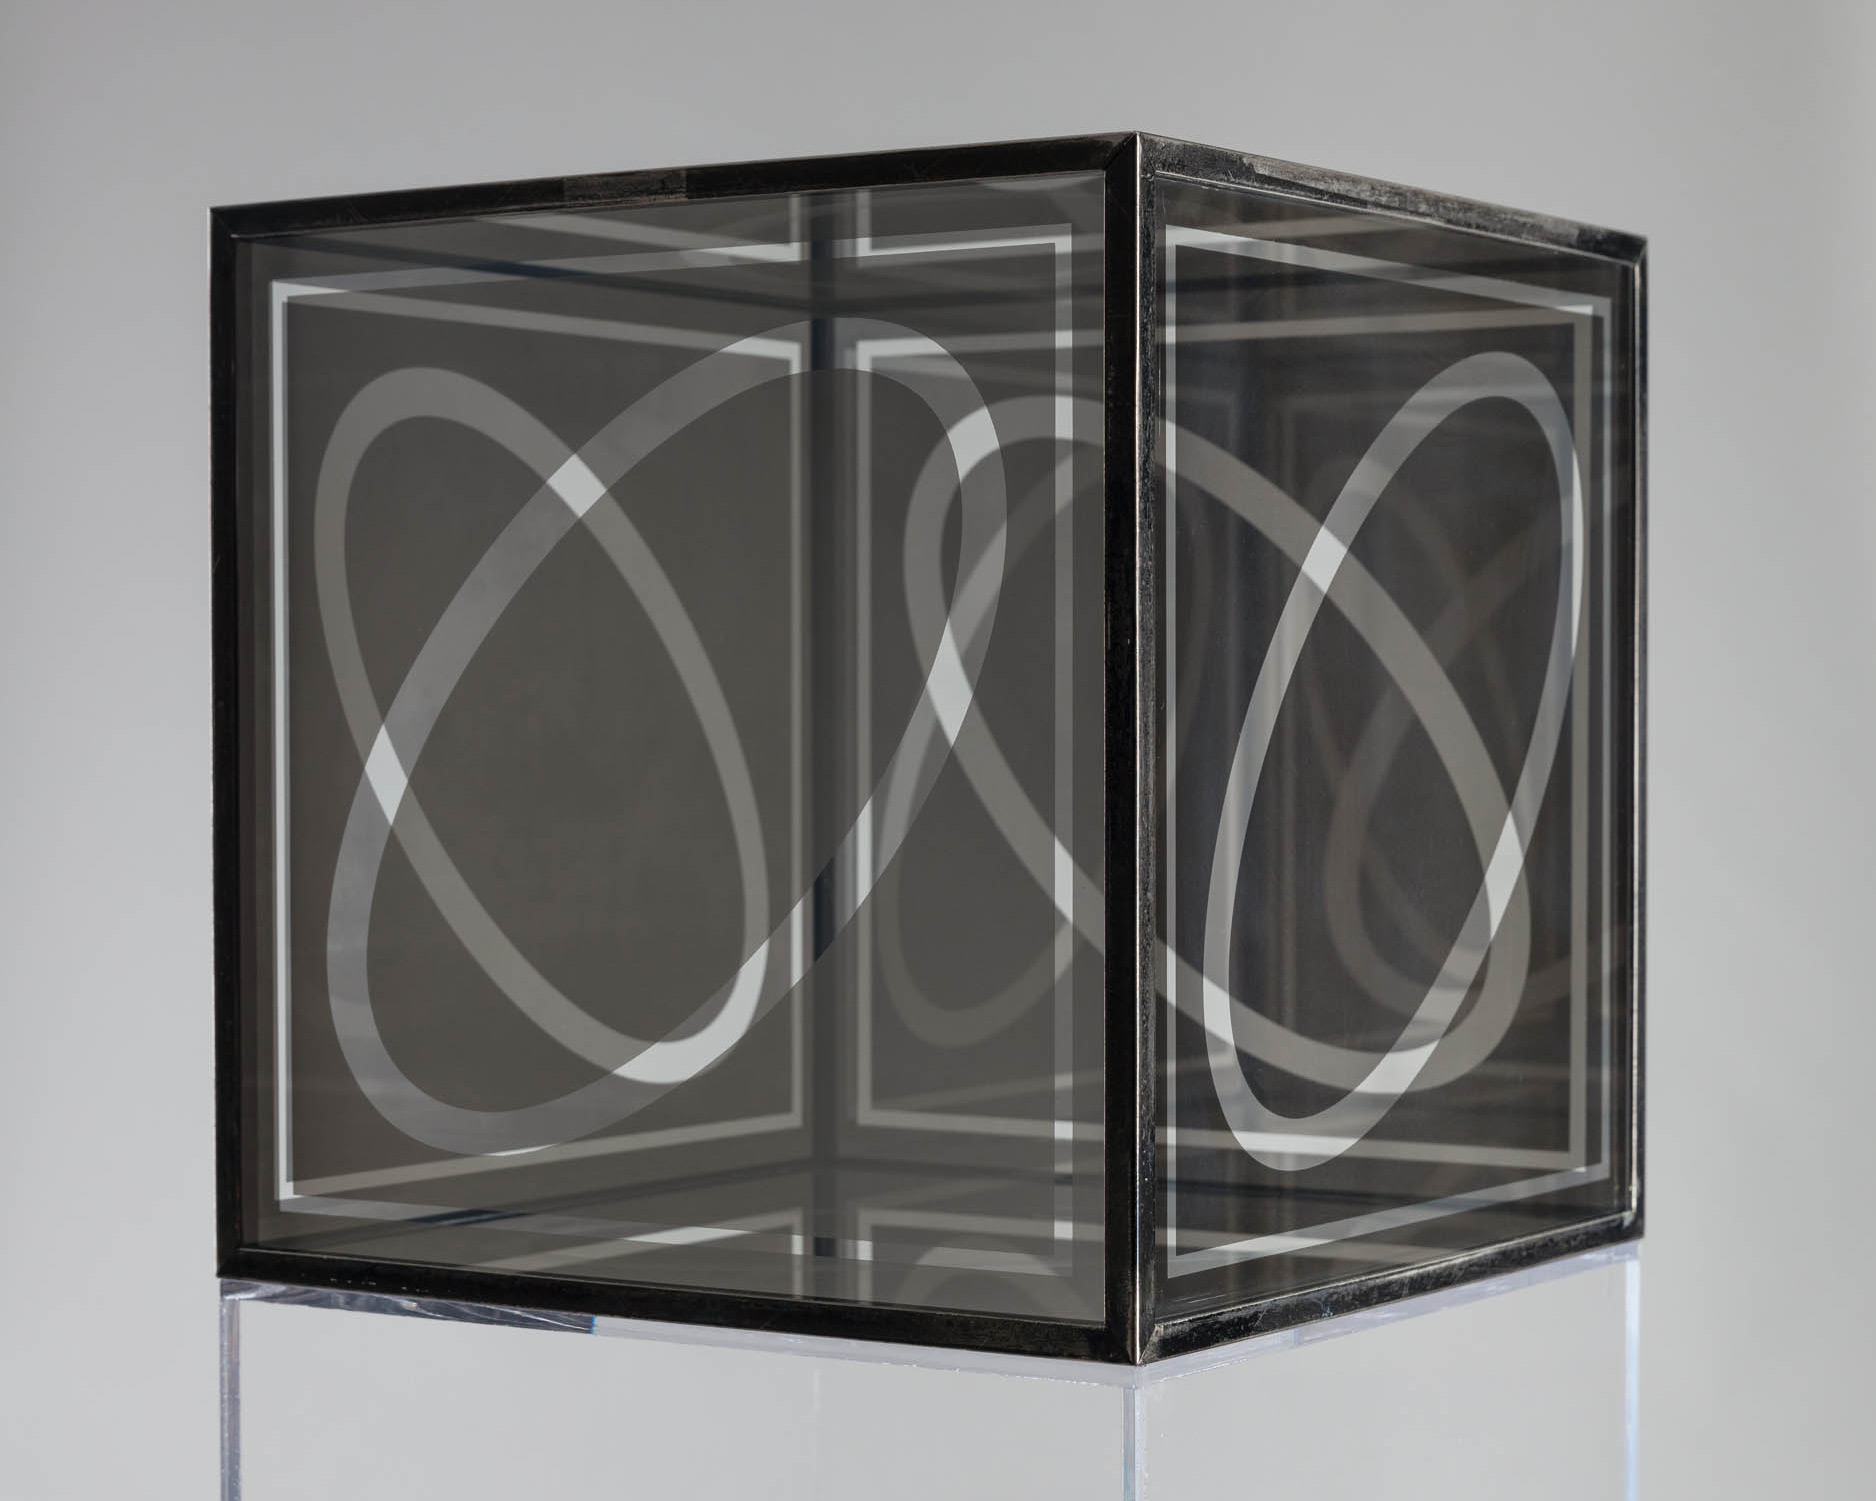 Image of Larry Bell, Untitled (Cube 12